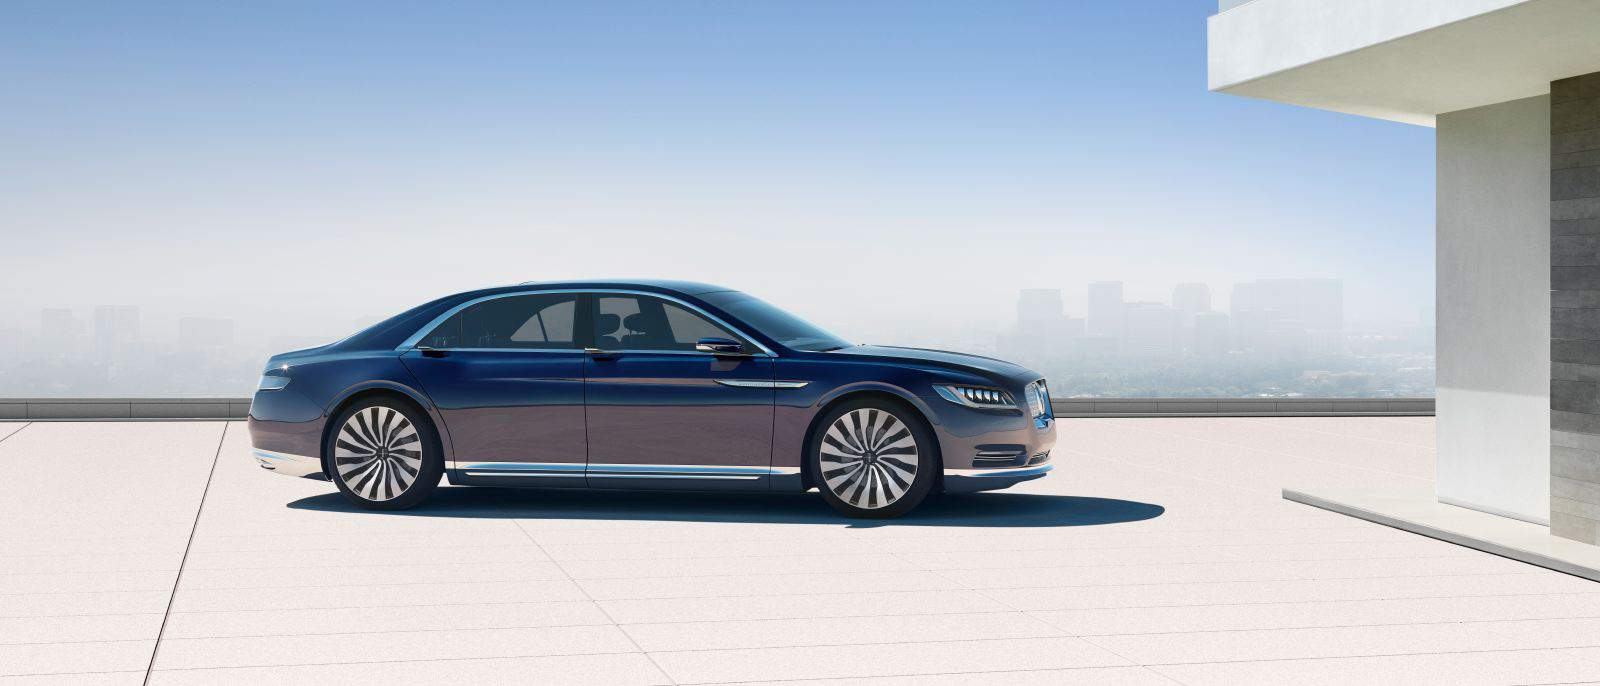 https://www.formtrends.com/wp-content/uploads/2015/03/lincoln-continental-concept_02_profile.jpg